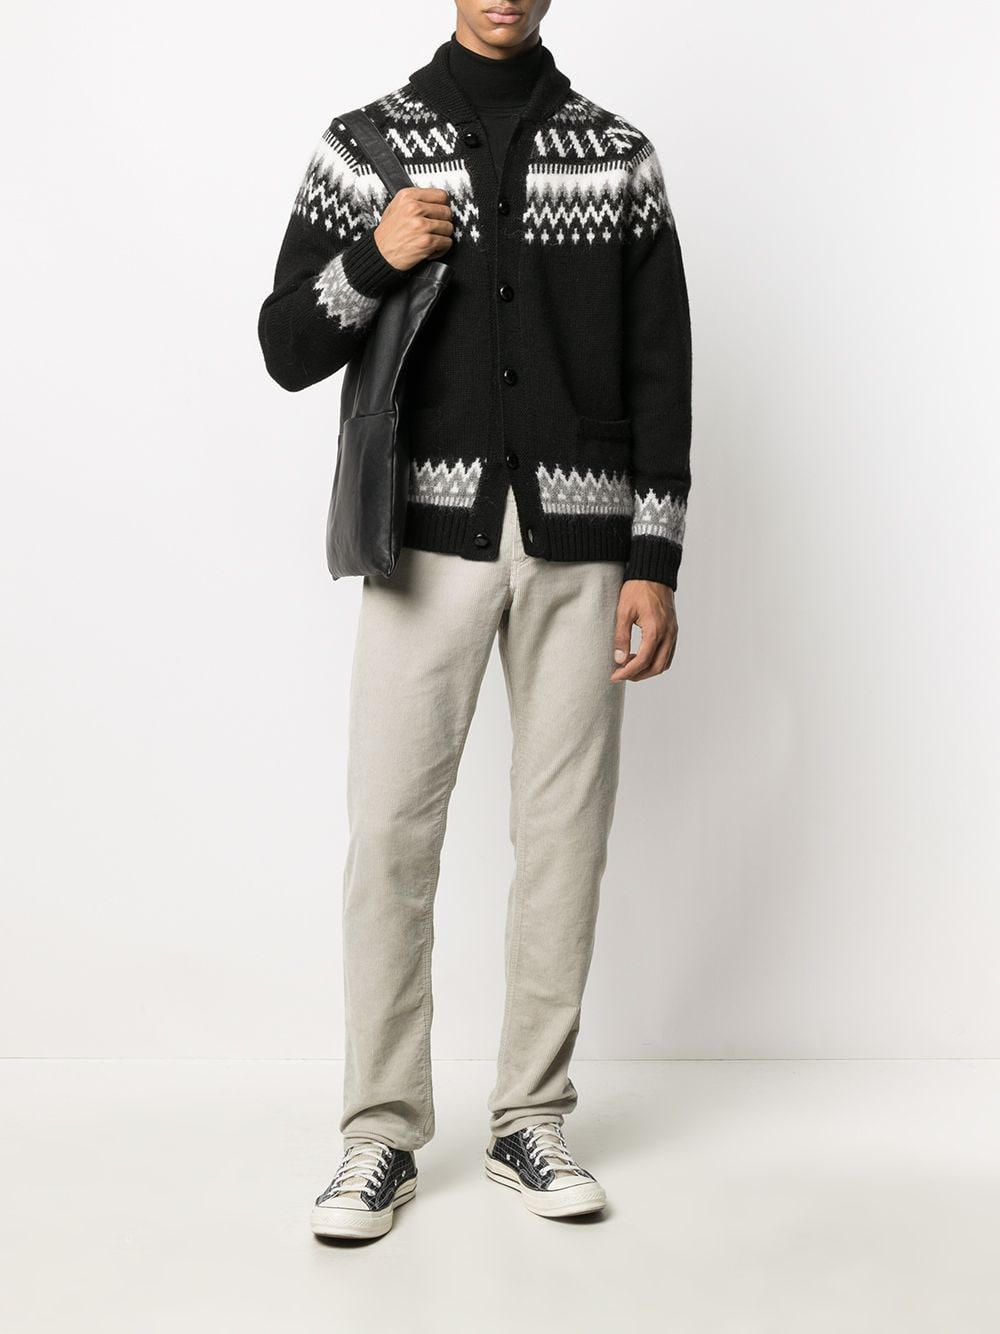 Black and white wool cardigan featuring fair isle intarsia knit ROBERTO COLLINA |  | RD07008B09